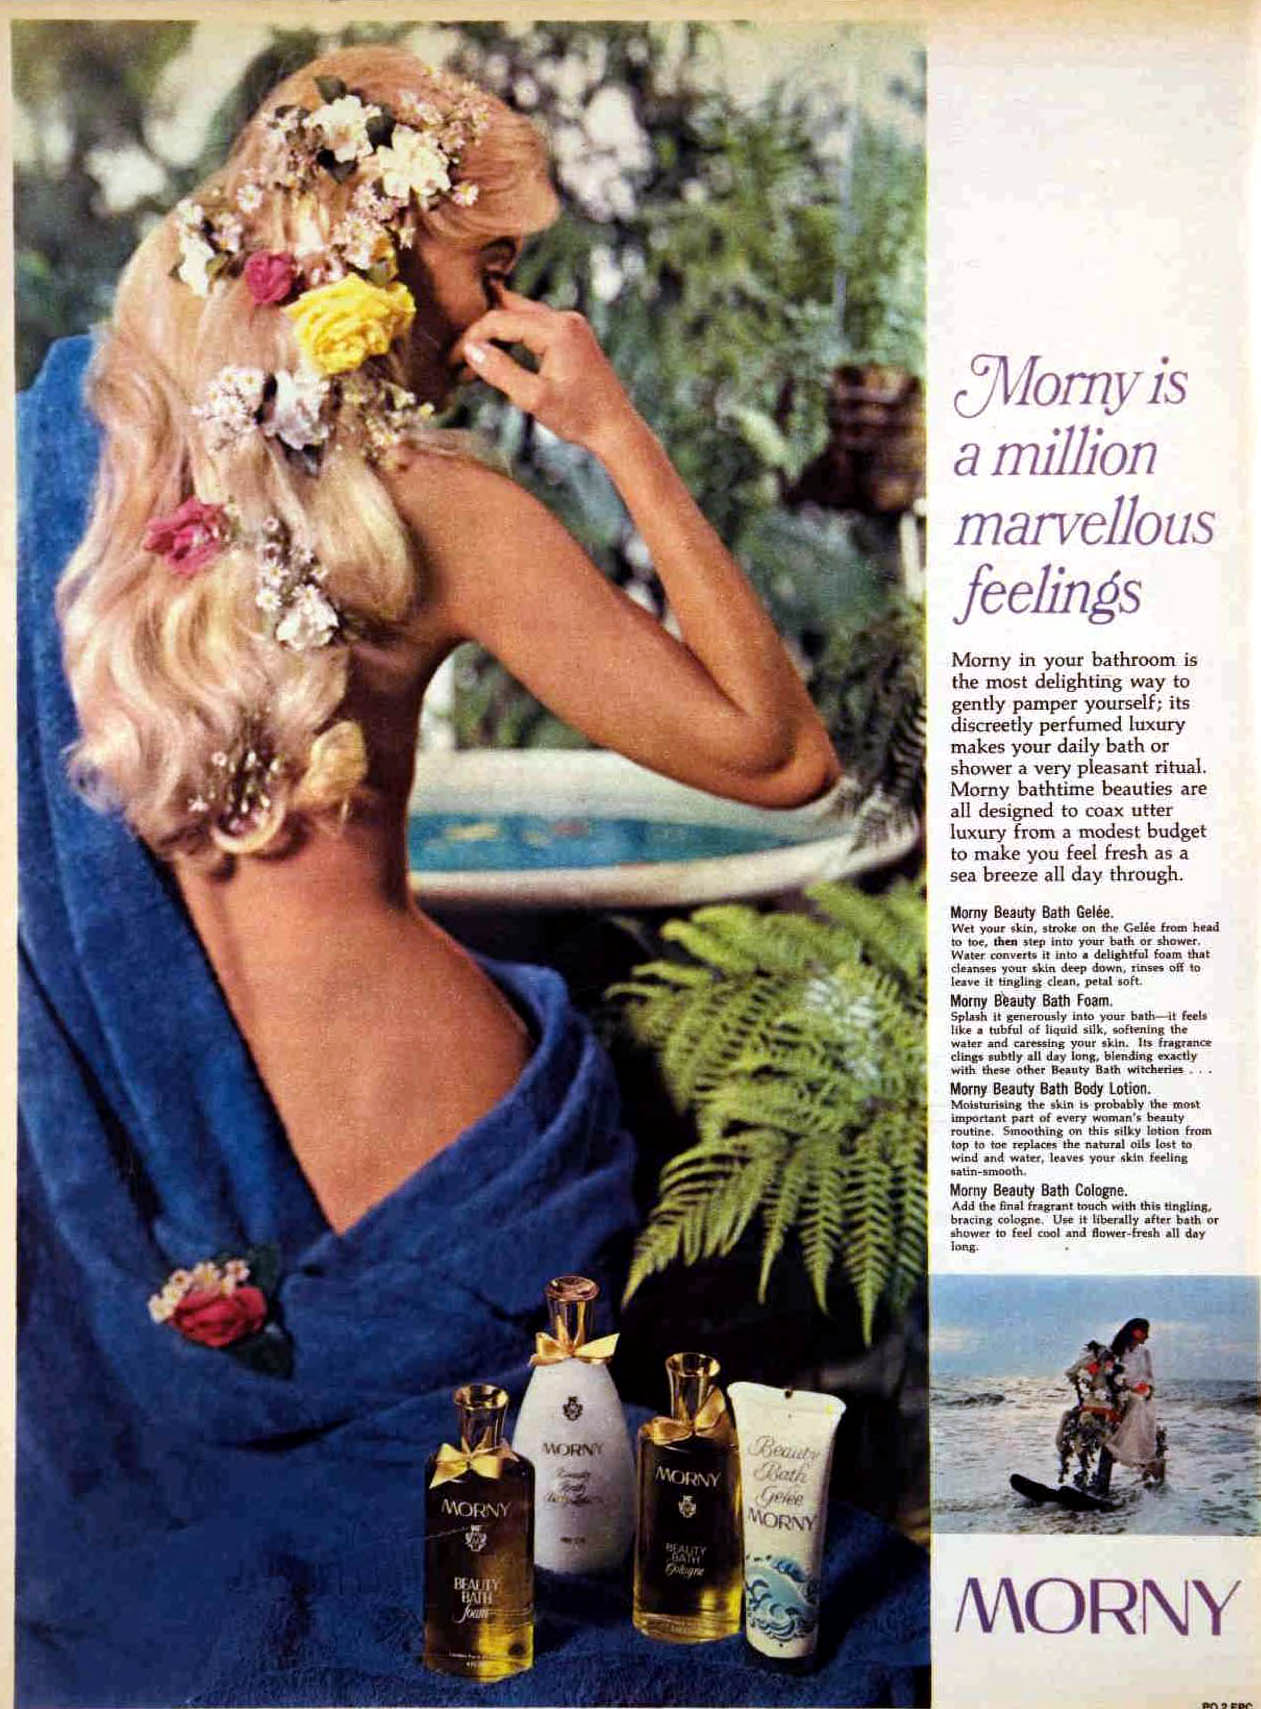 1968 bath perfume vintage advert